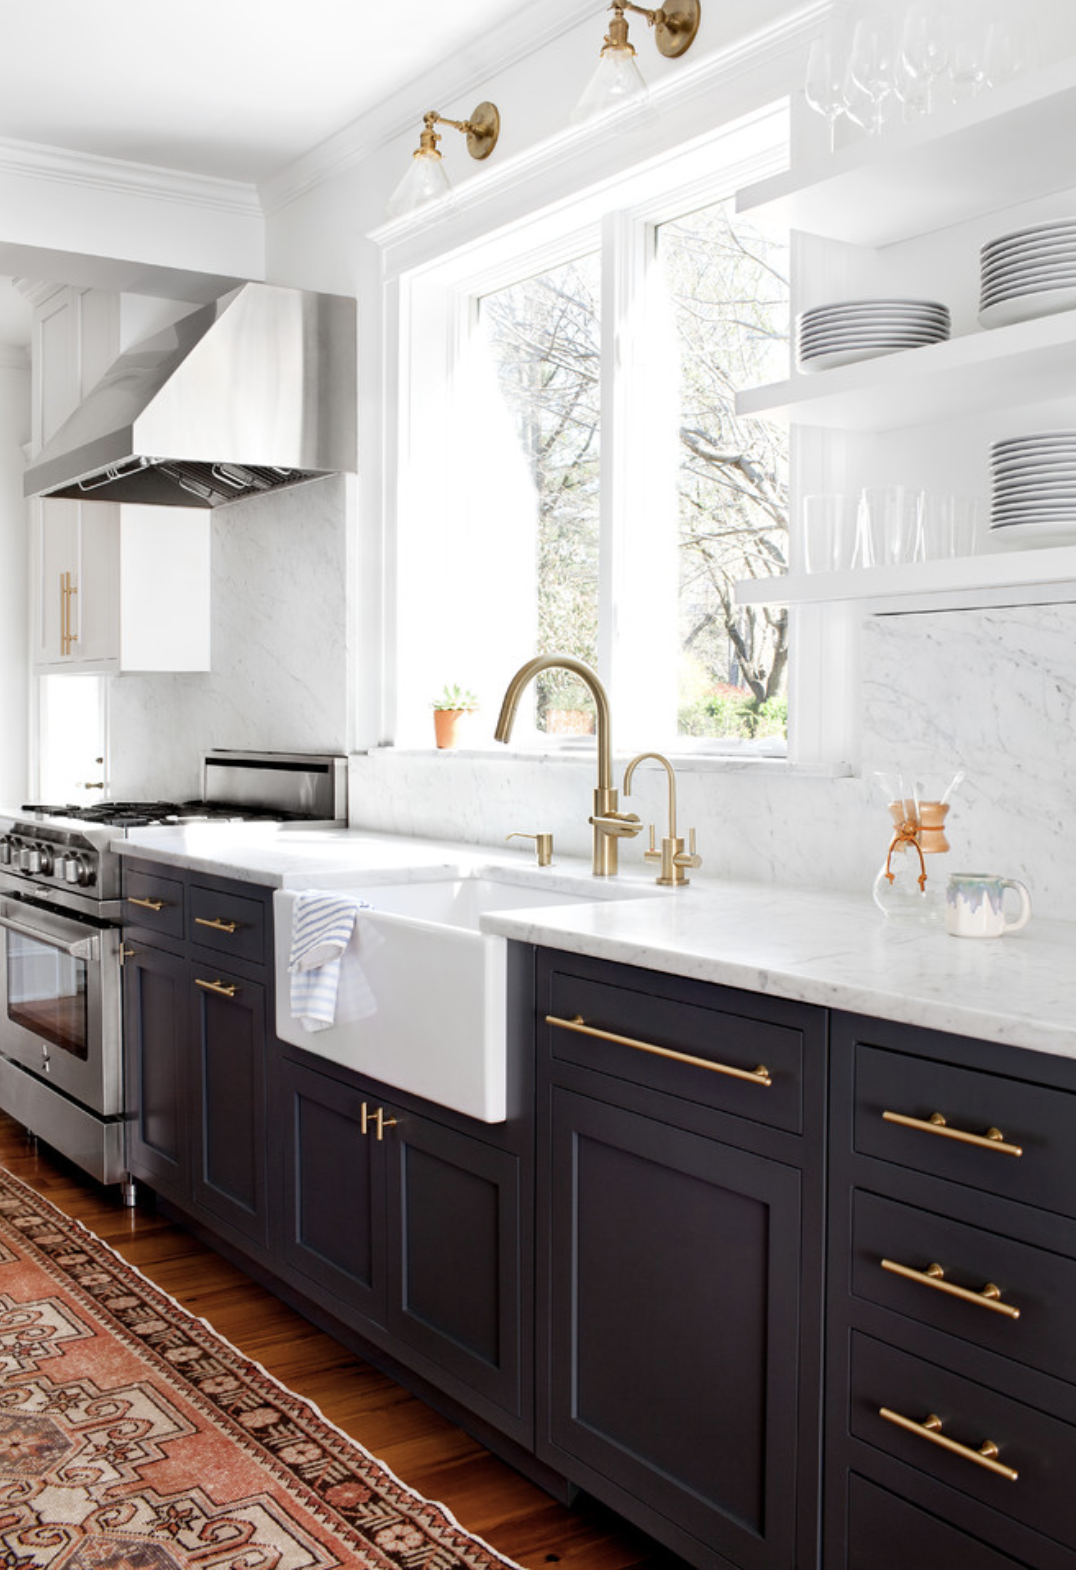 navy color for island only, white perimeter - brushed brass hardware ...